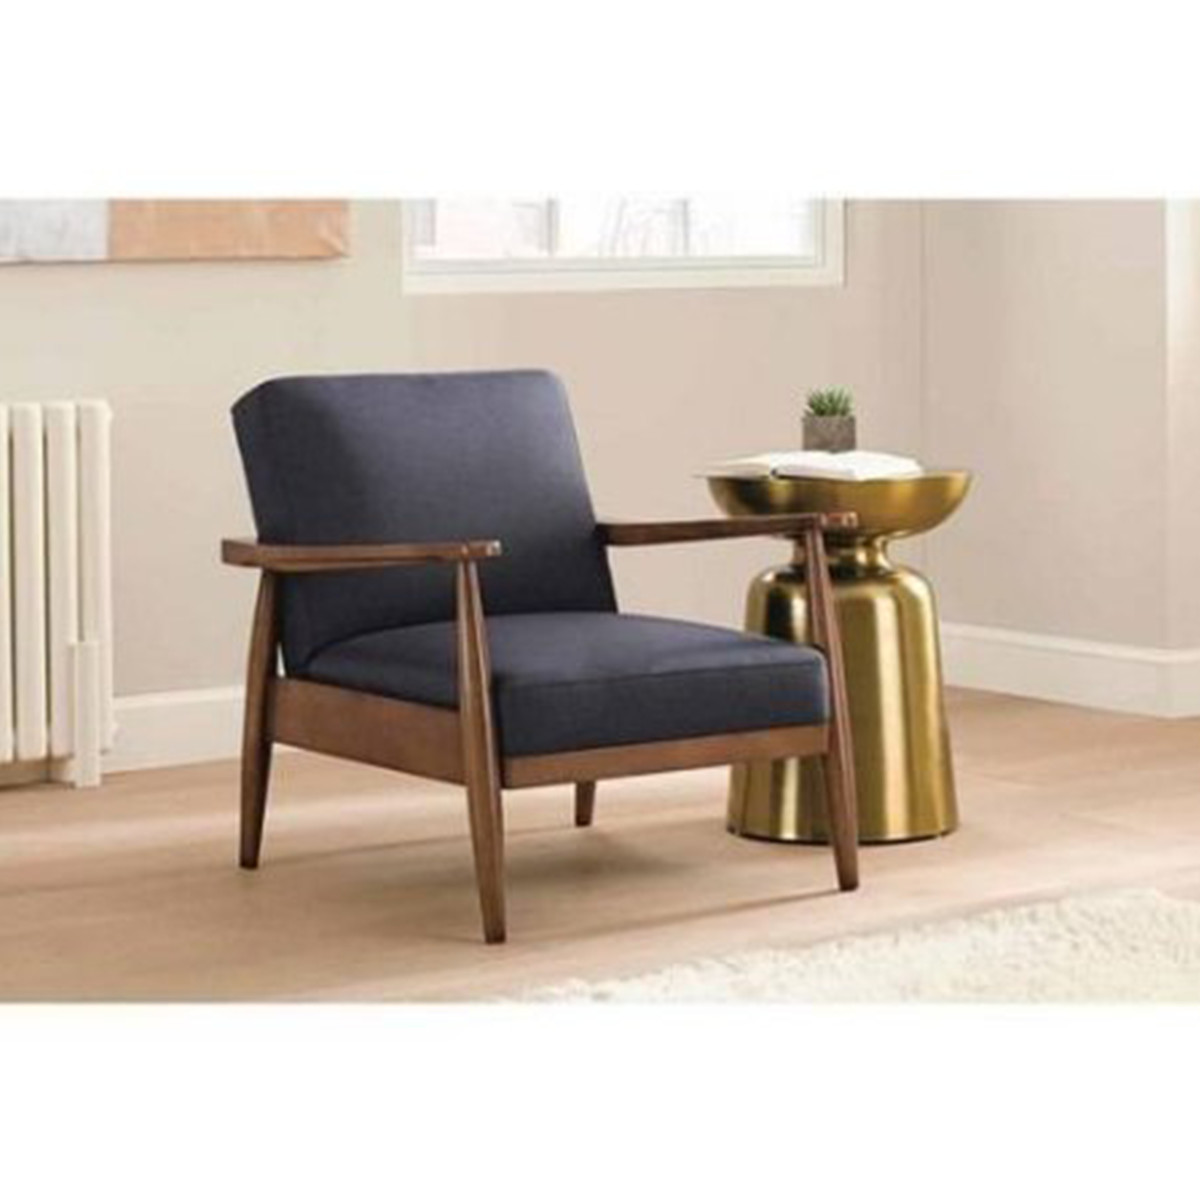 Better Homes & Gardens Flynn Midcentury Chair Wood with Linen Upholstery photo